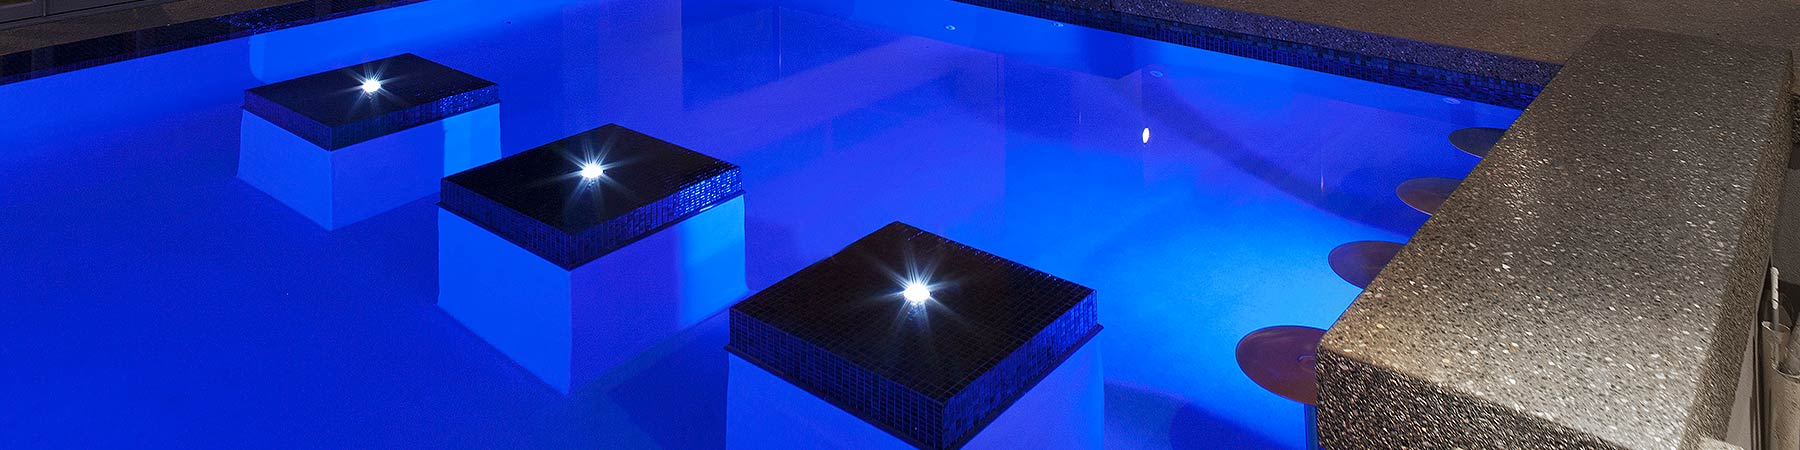 Swimming pool lighting pools by design perth - Swimming pool lighting design ...